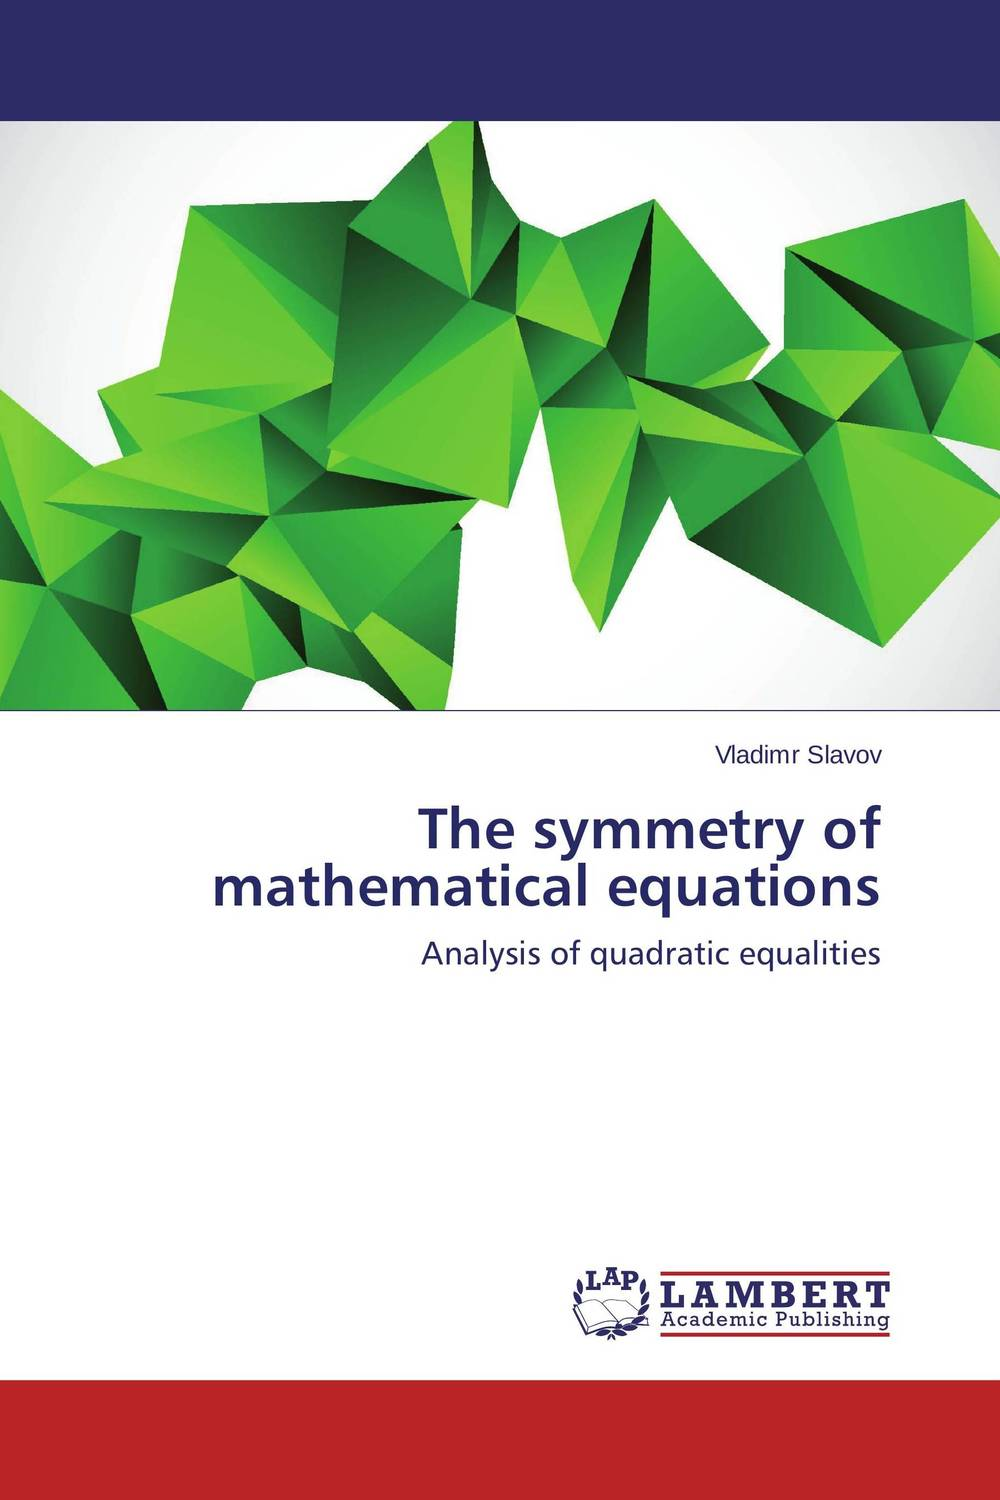 The symmetry of mathematical equations class numbers quadratic and cyclotomic fields